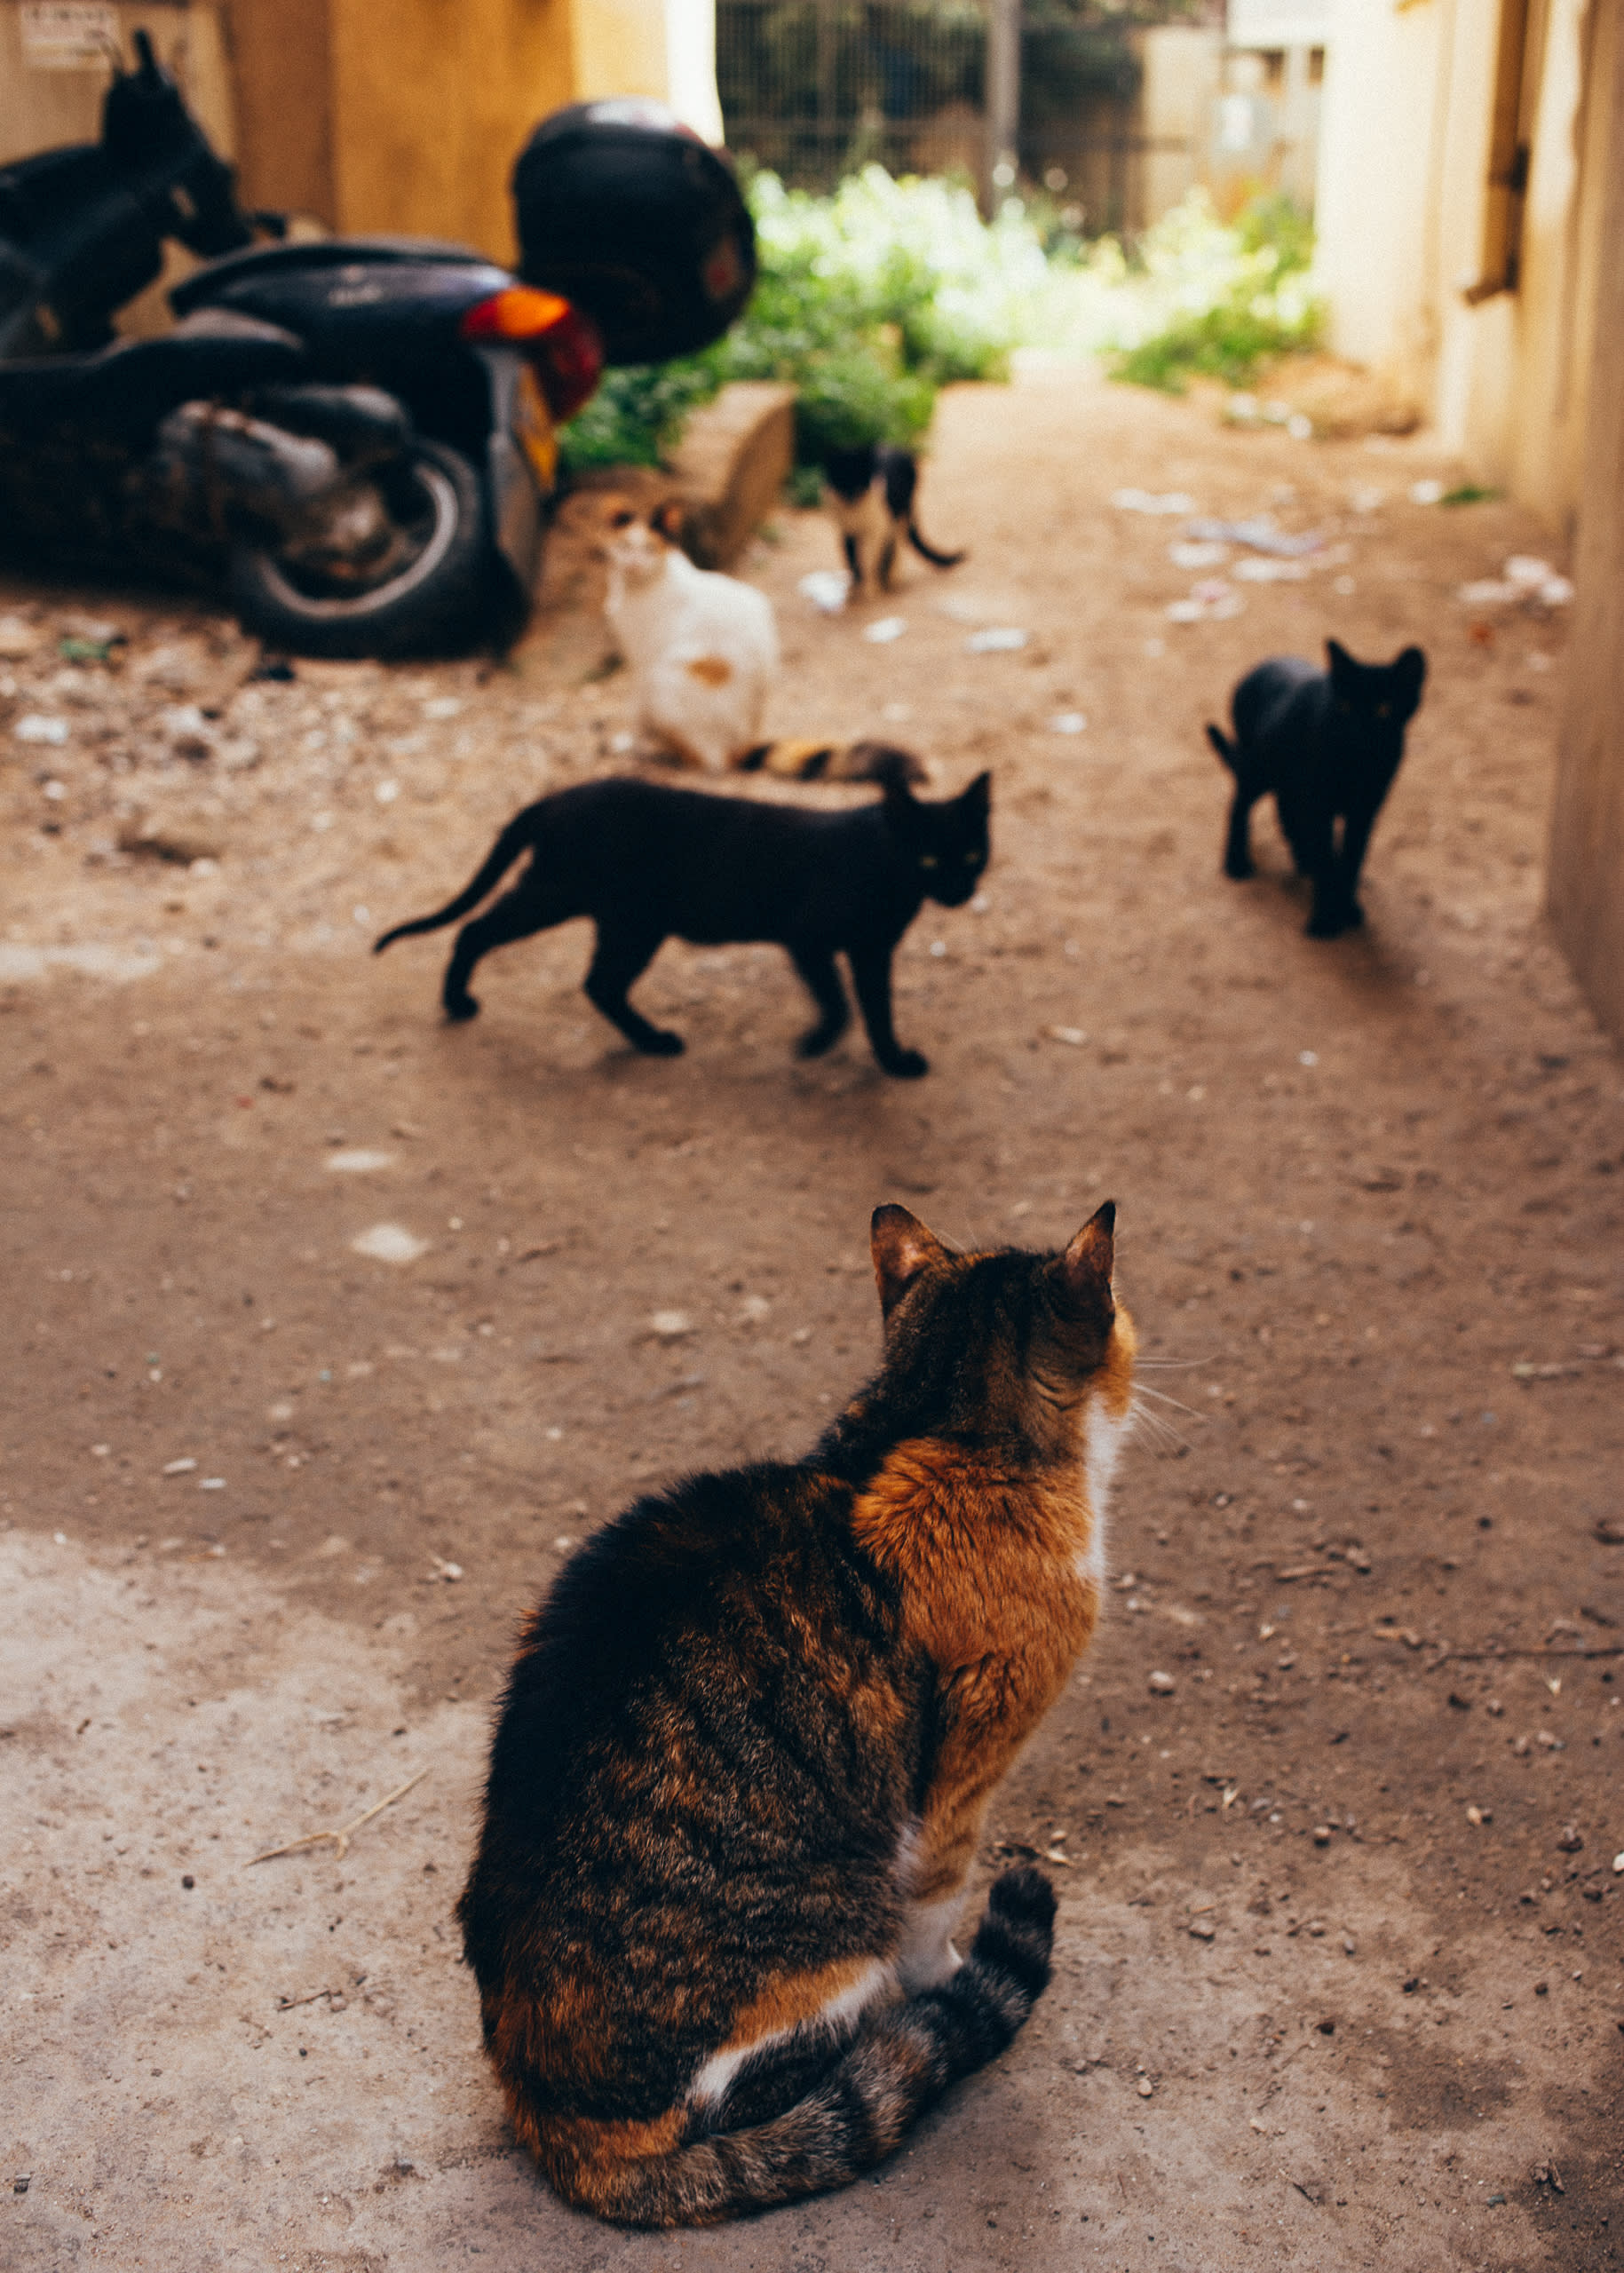 Cats in alley